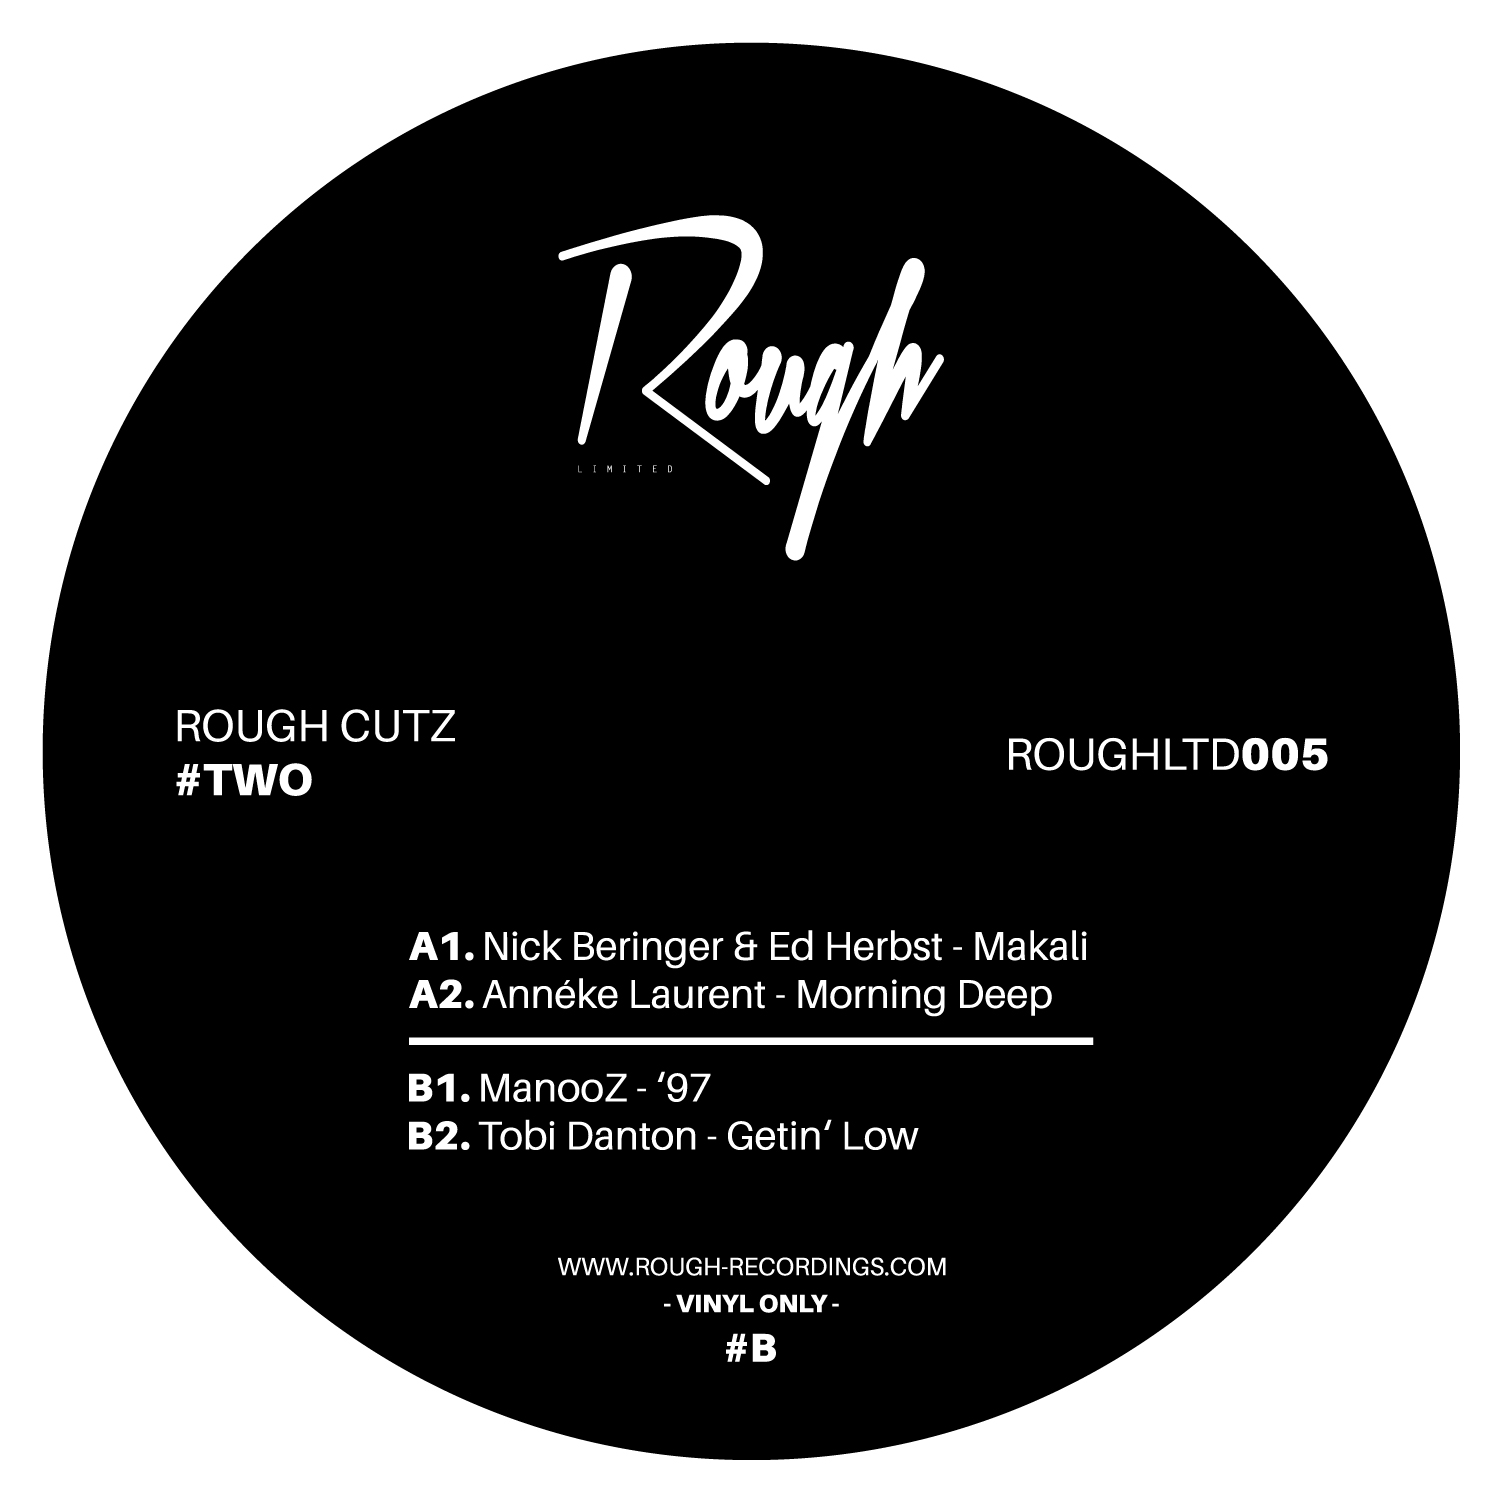 https://www.rough-recordings.com/wp-content/uploads/ROUGHLTD005_B.jpg